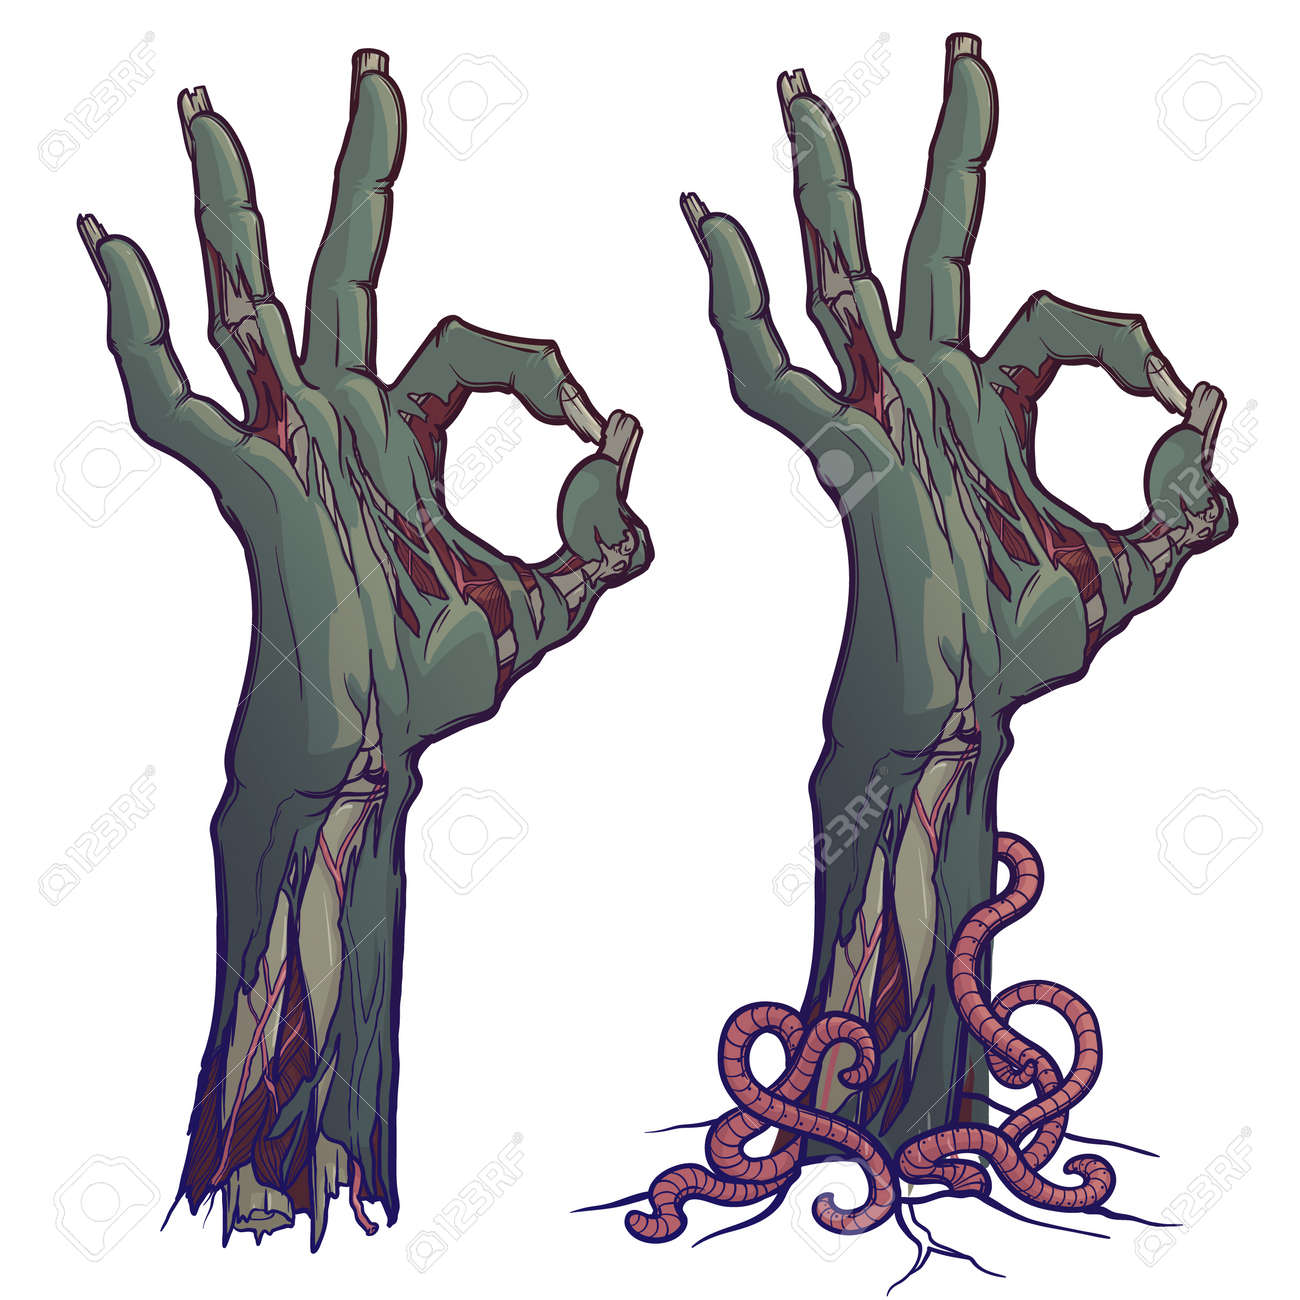 Zombie body language. OK Sign. lifelike depiction of the rotting flash with ragged skin, protruding bones and cracked nails. linear drawing colored Isolated on white background. EPS10 vector - 109543259